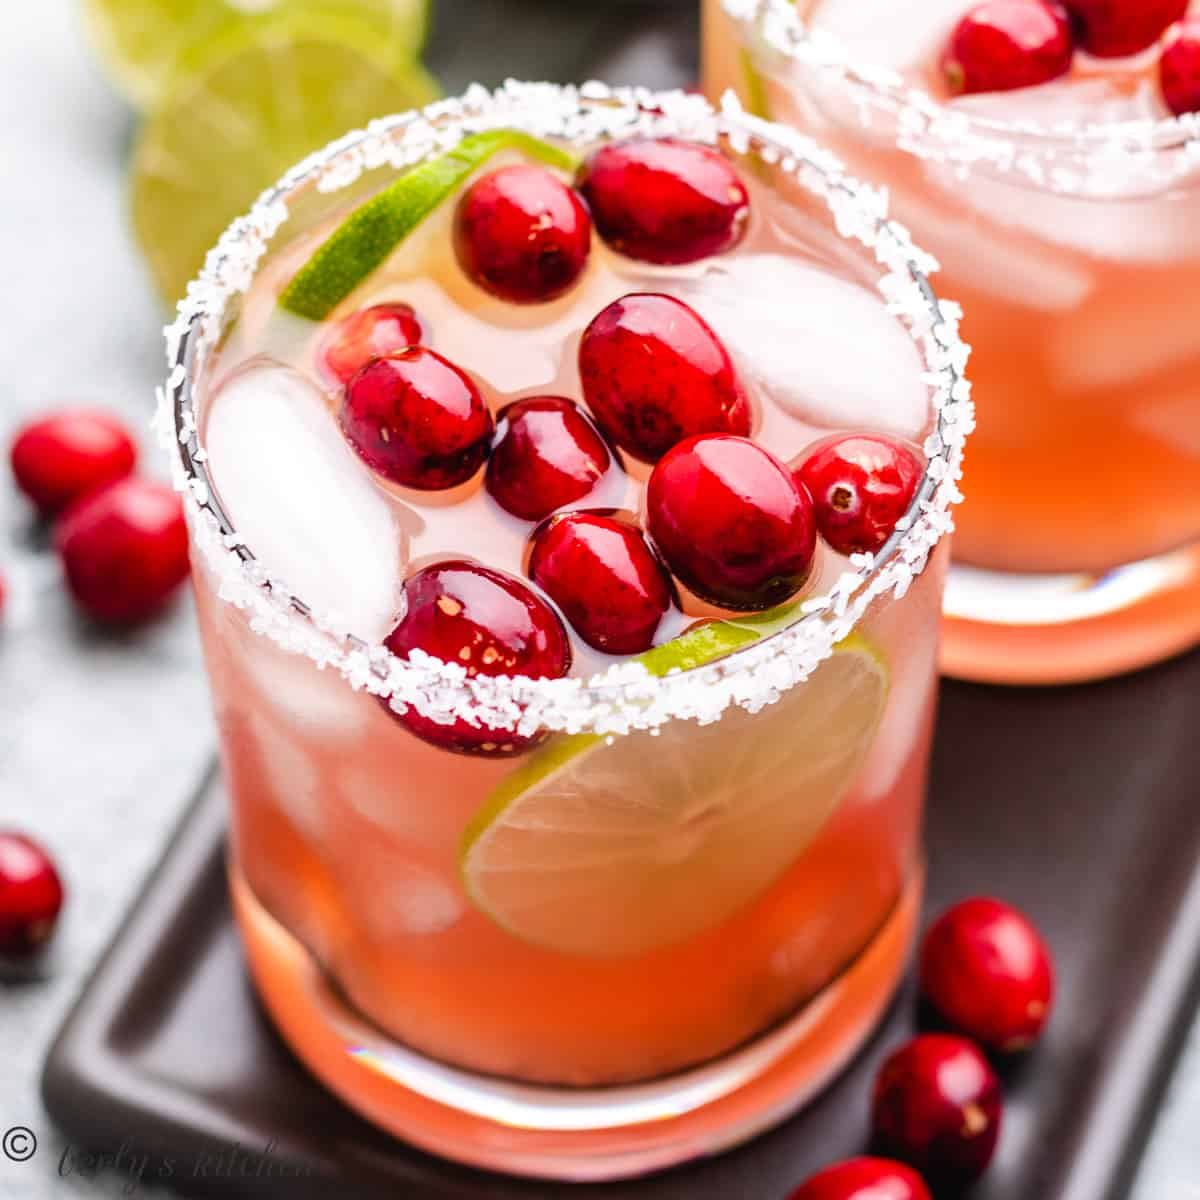 A cranberry margarita garnished with salt and fresh cranberries.